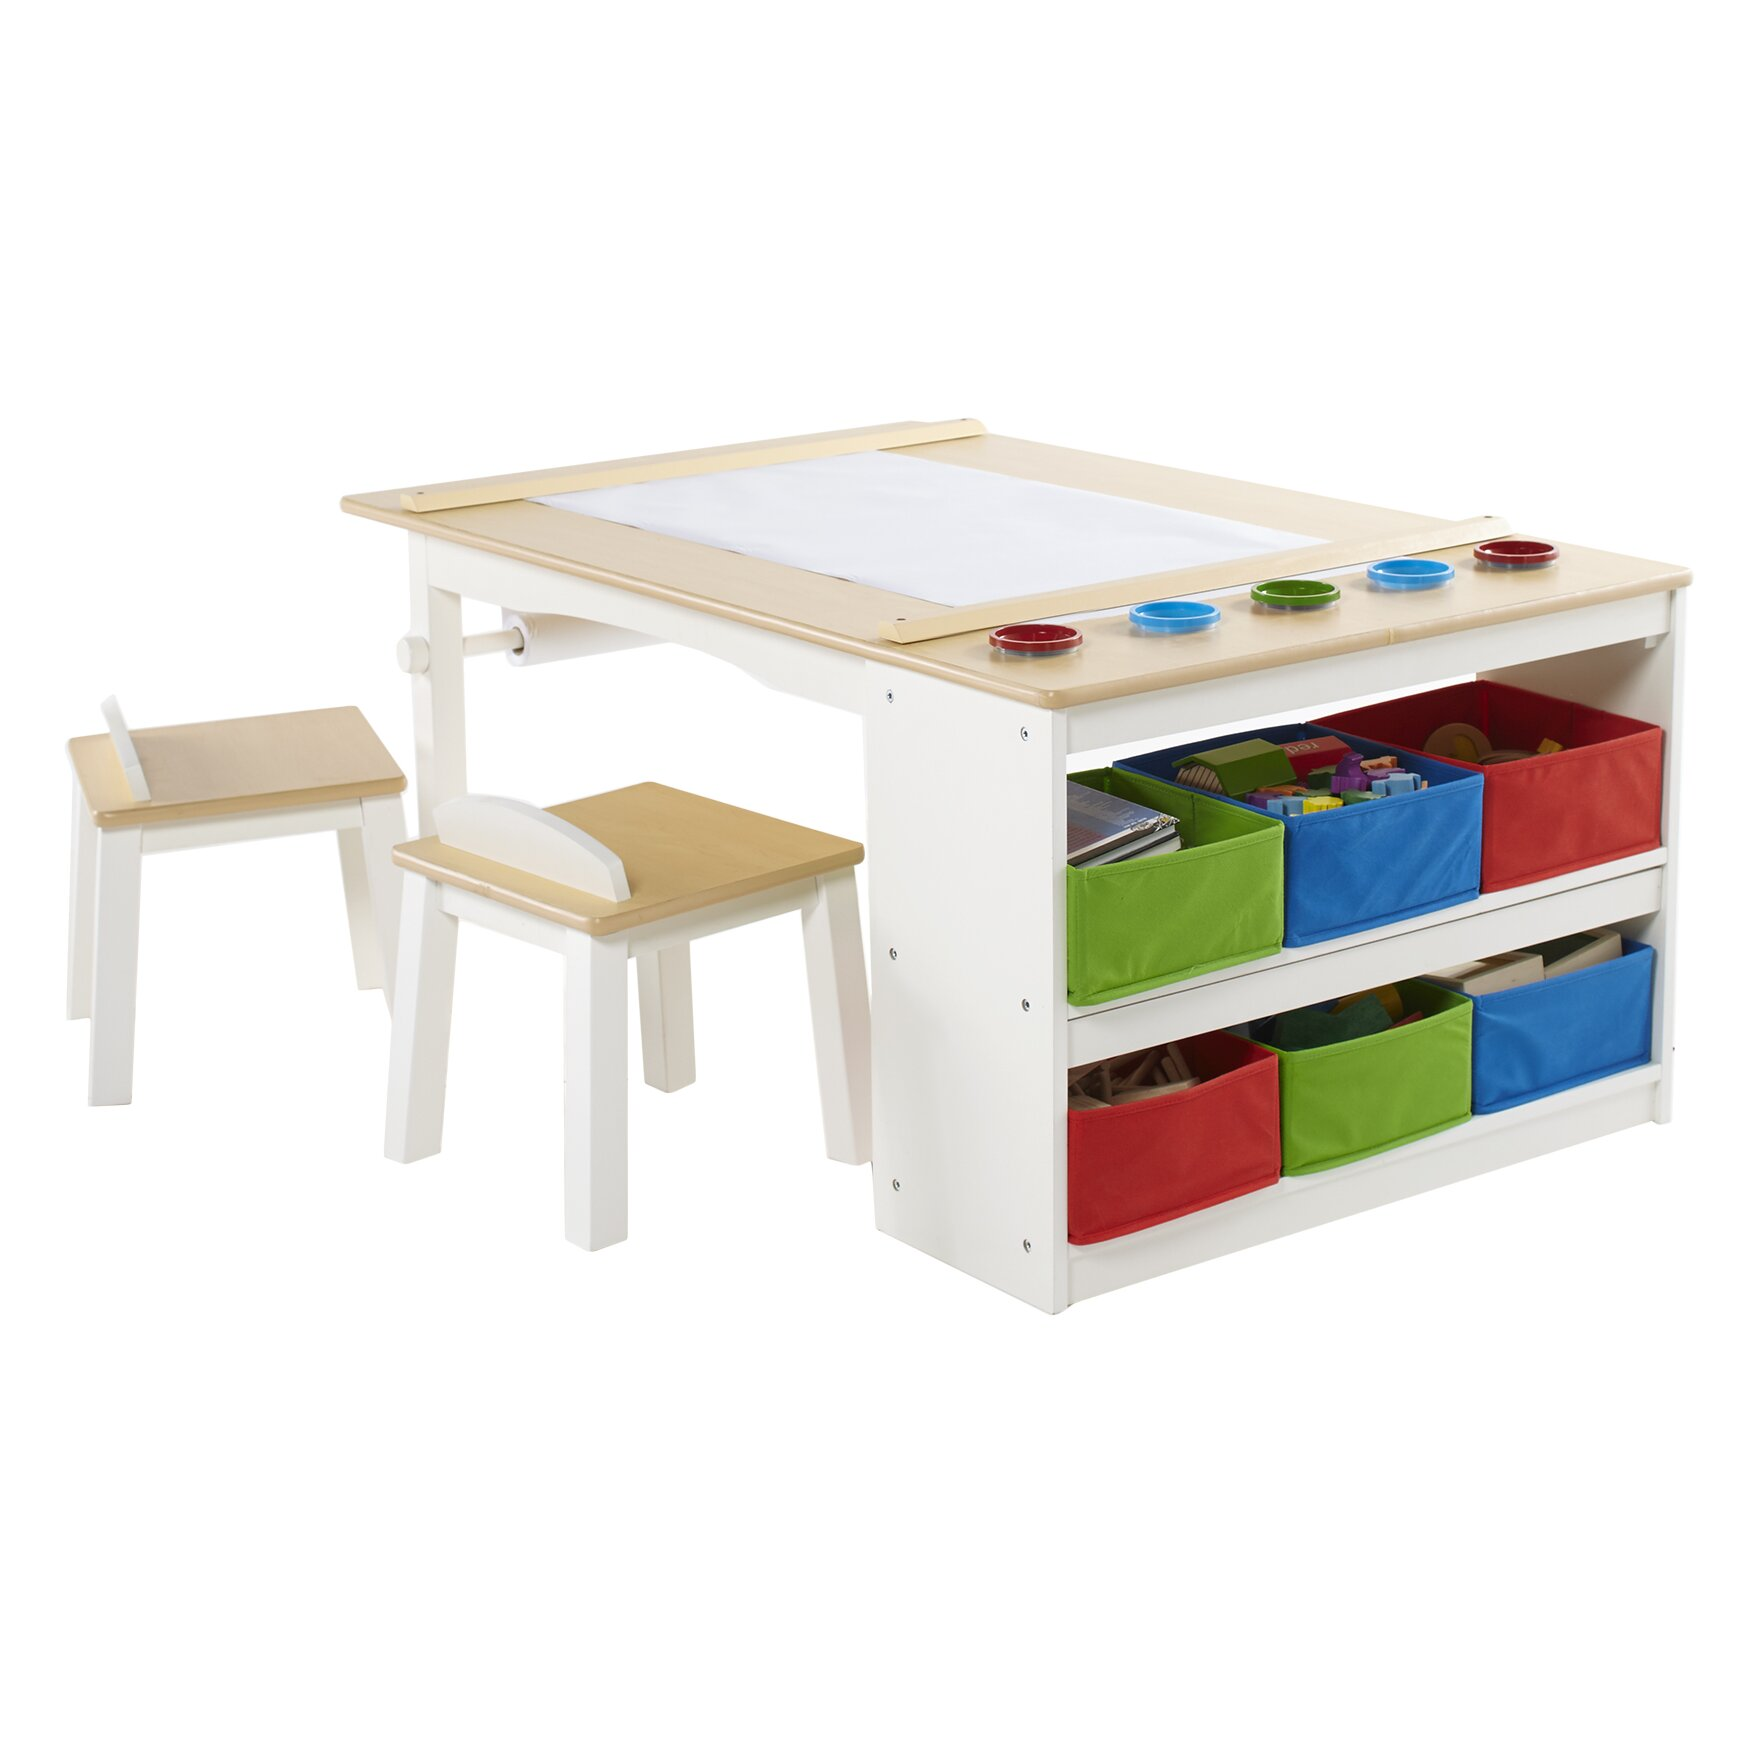 Art kids arts and crafts center table wayfair for Allart center